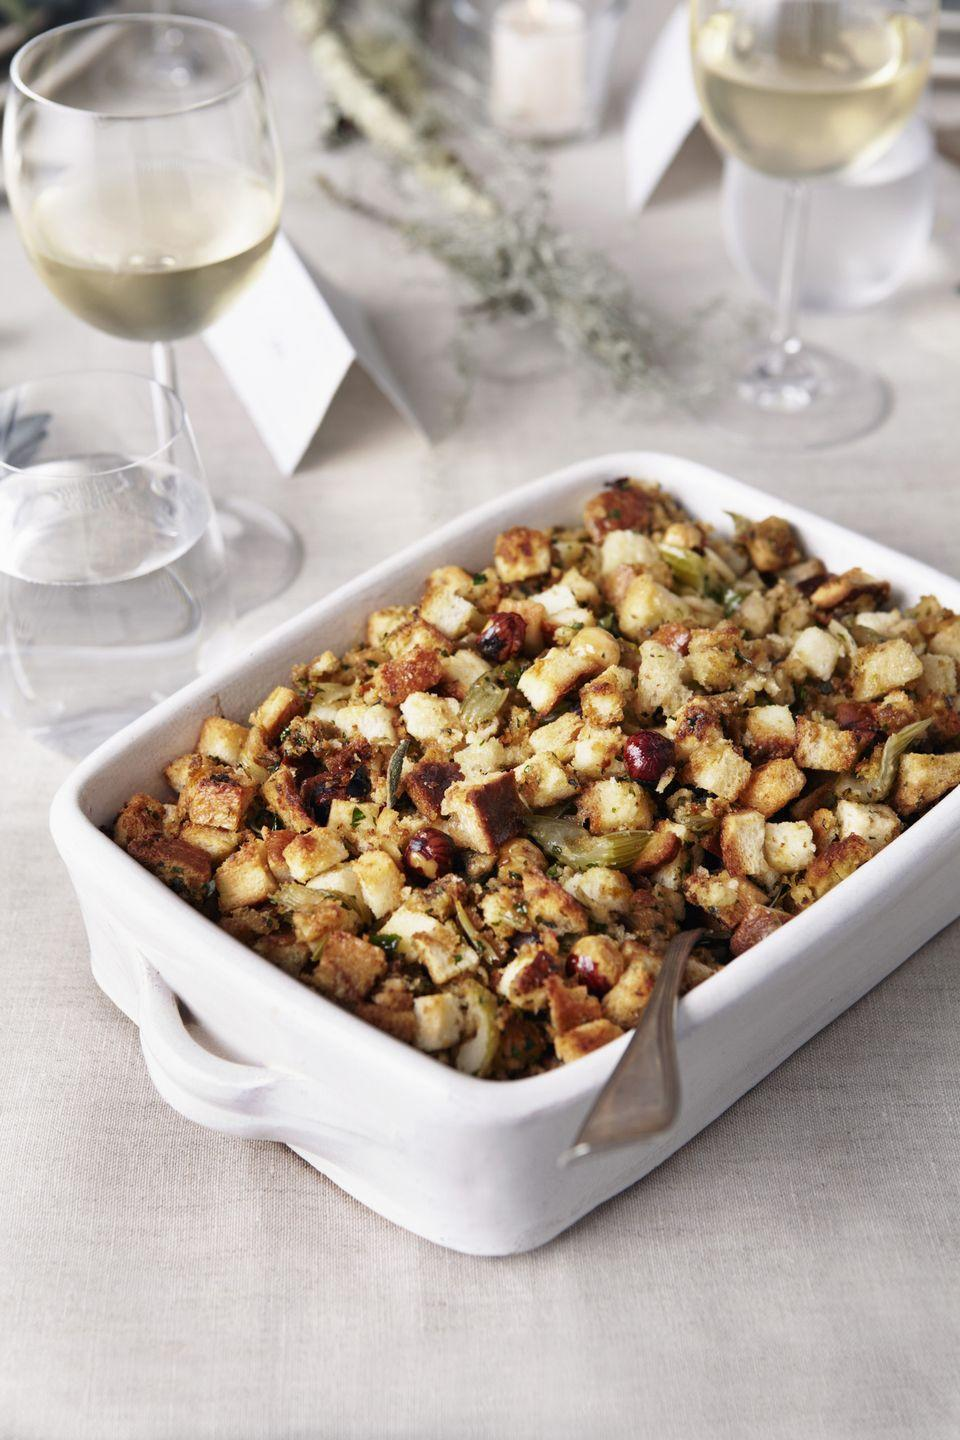 <p>Make stuffing with whole-grain bread, and choose a whole-grain option for dinner rolls, crostini, crackers, or pita chips. Whole grains take longer to digest than white flour, which helps prevent blood sugar spikes that can lead to type 2 diabetes, a heart disease risk.</p>